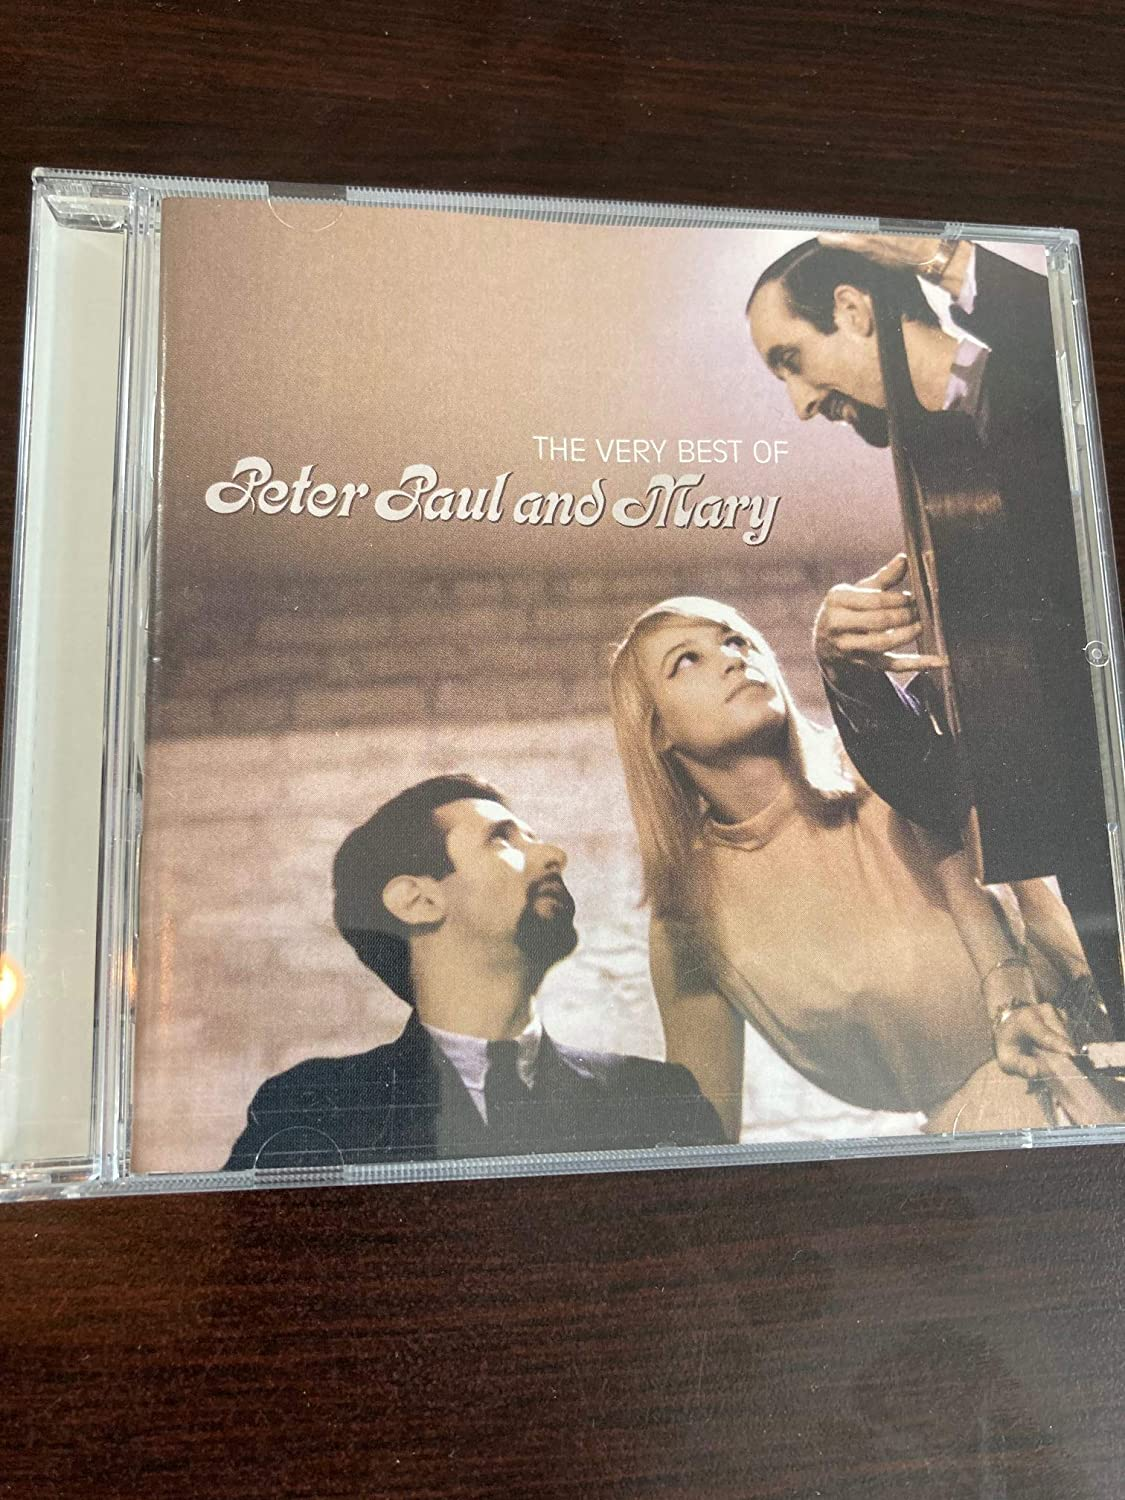 Very Best free Discount mail order shipping of Peter Paul Mary